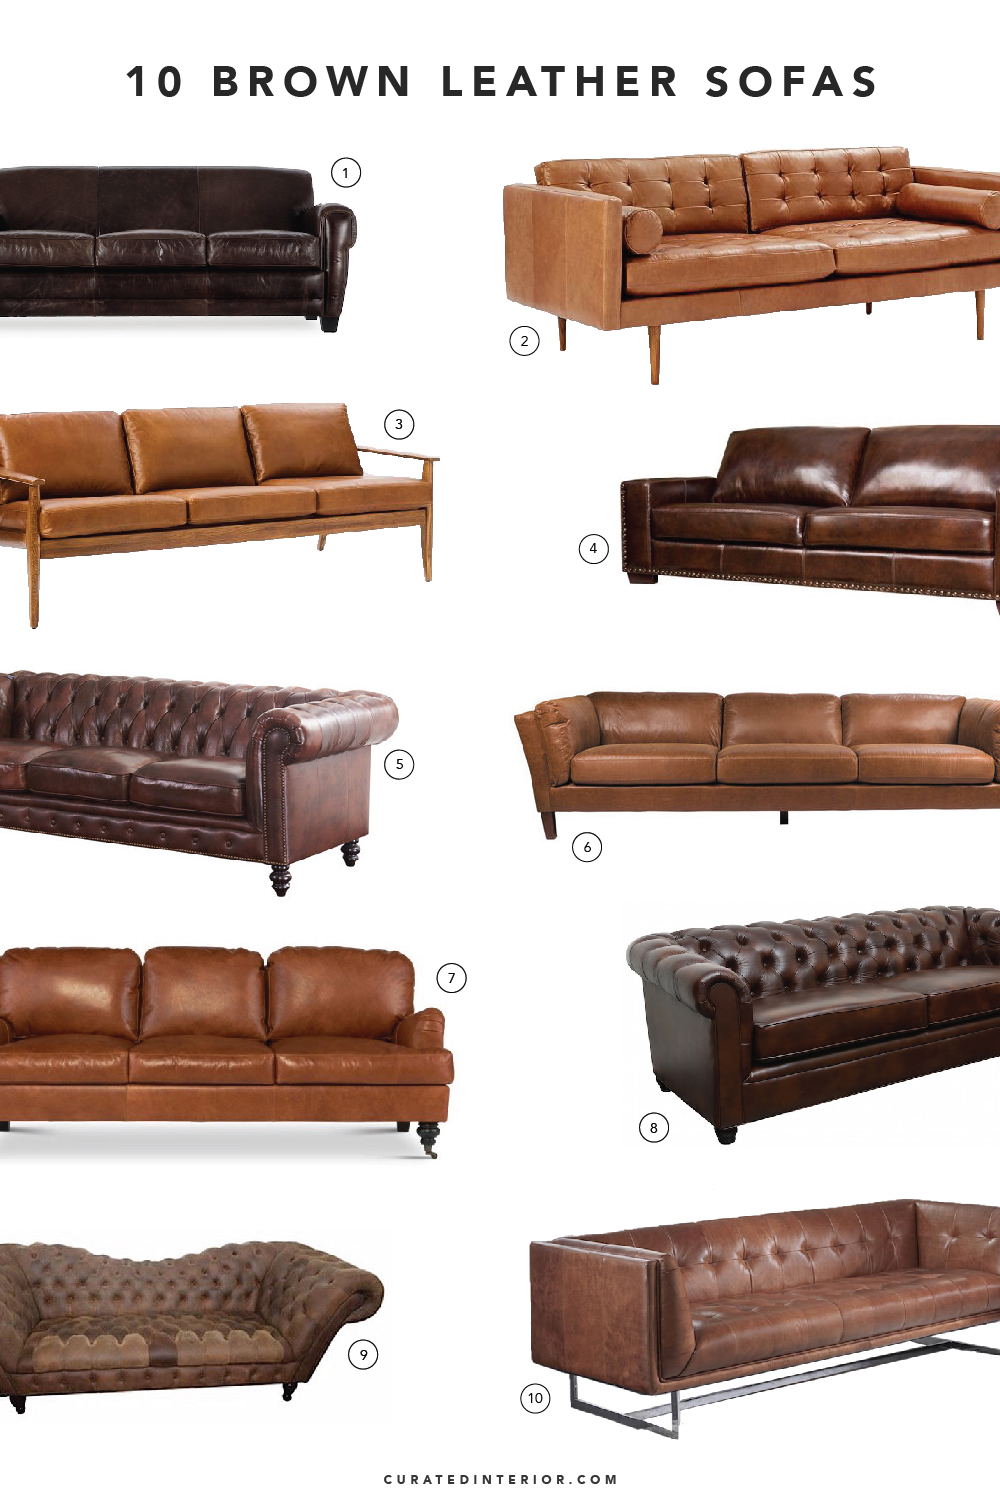 Top Brown Leather Sofas